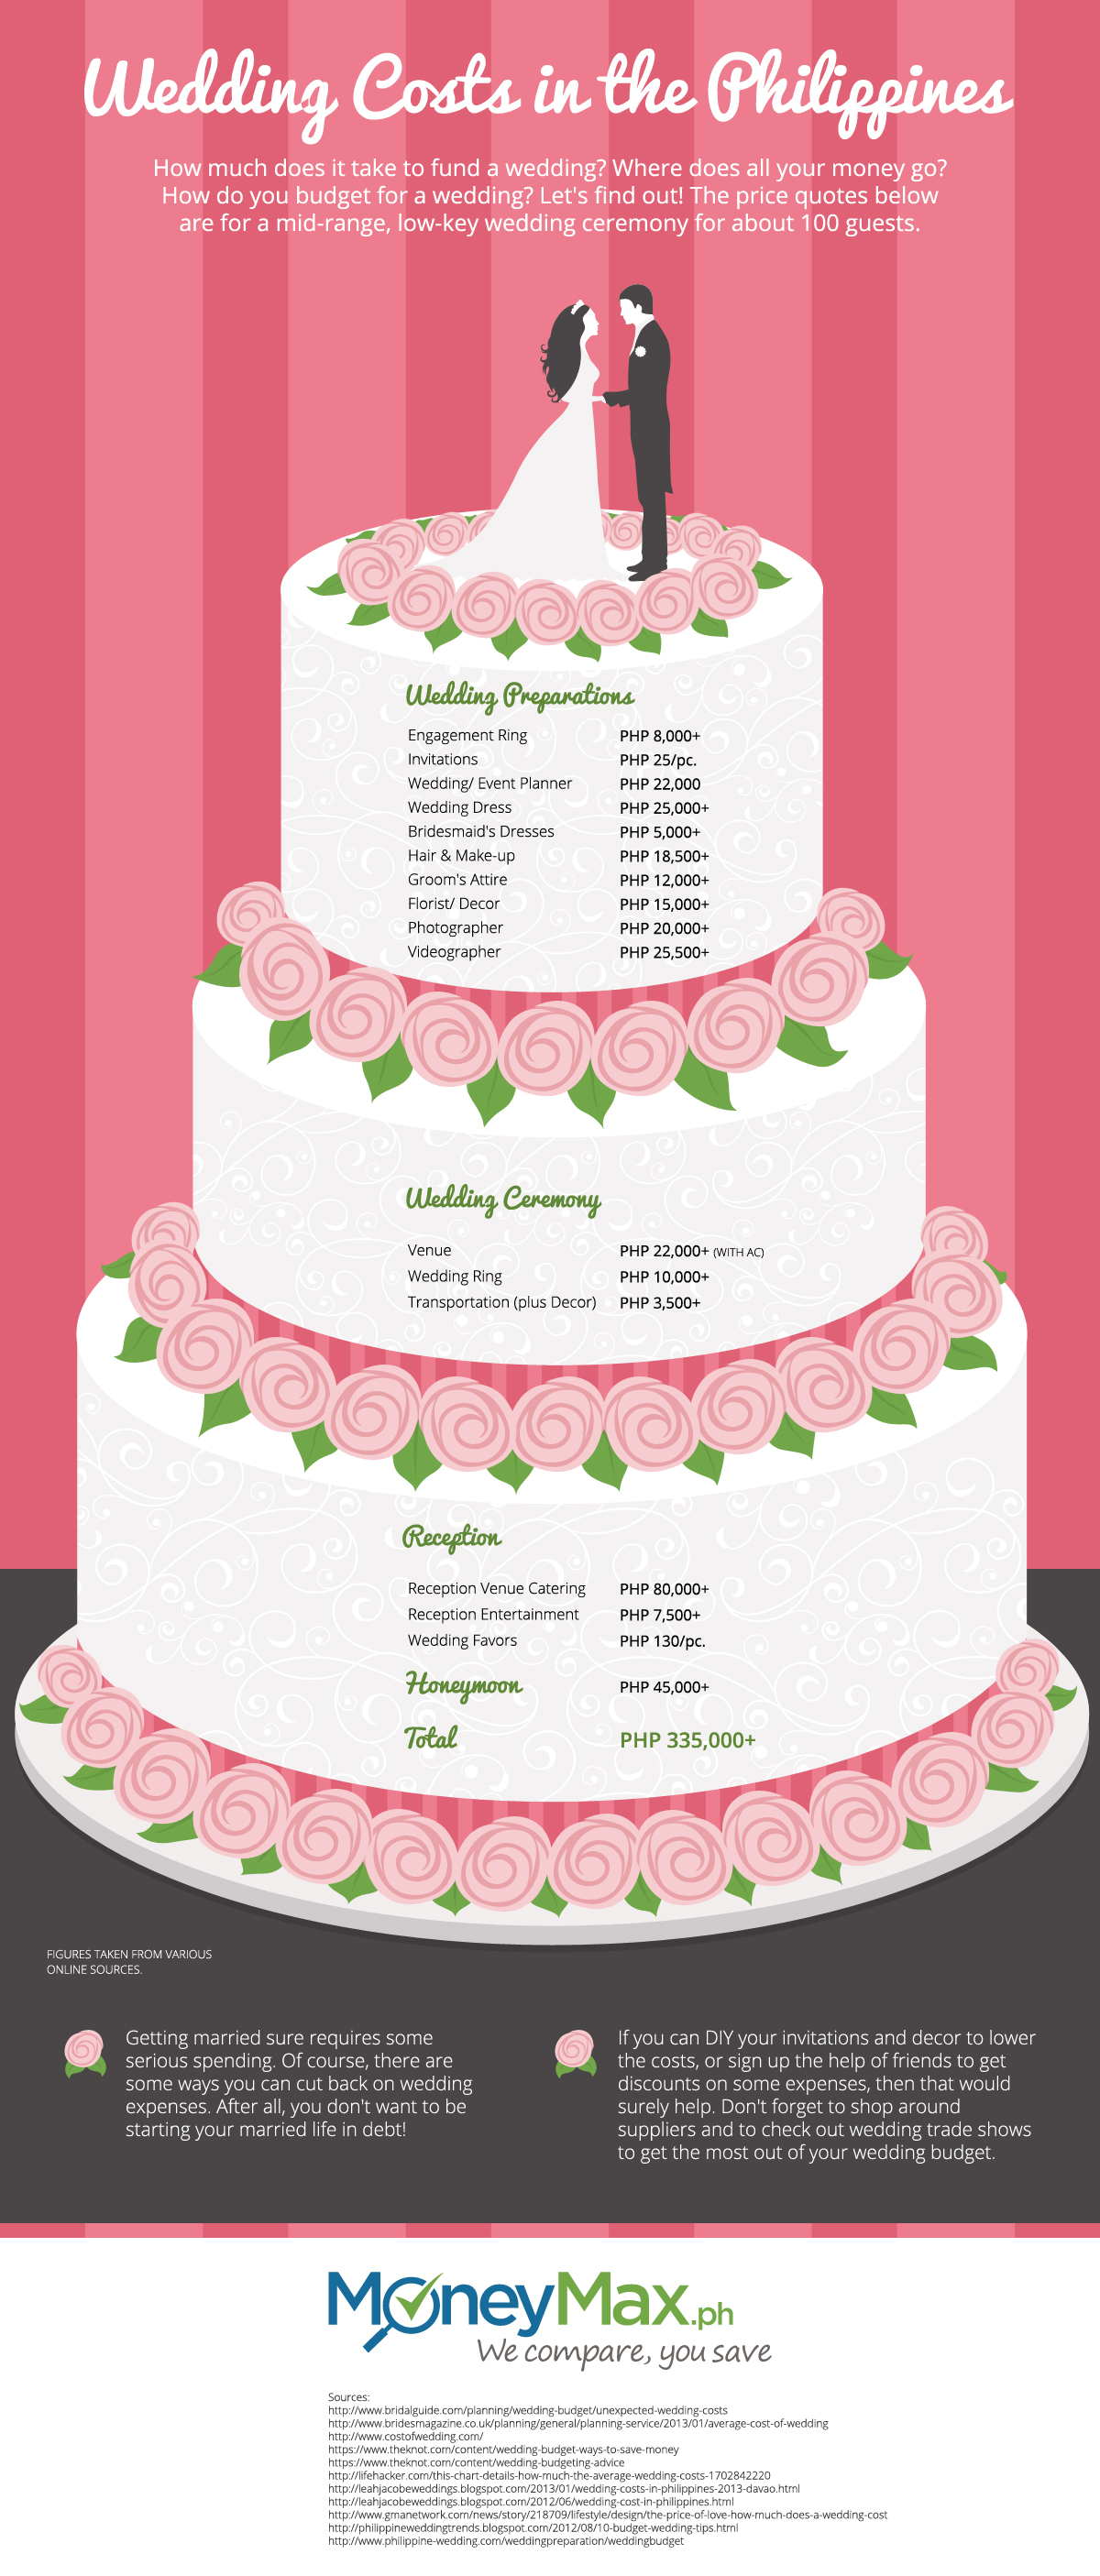 How much does a wedding cost in the philippines weddings in the wedding cost in manila tagaytay philippines junglespirit Image collections